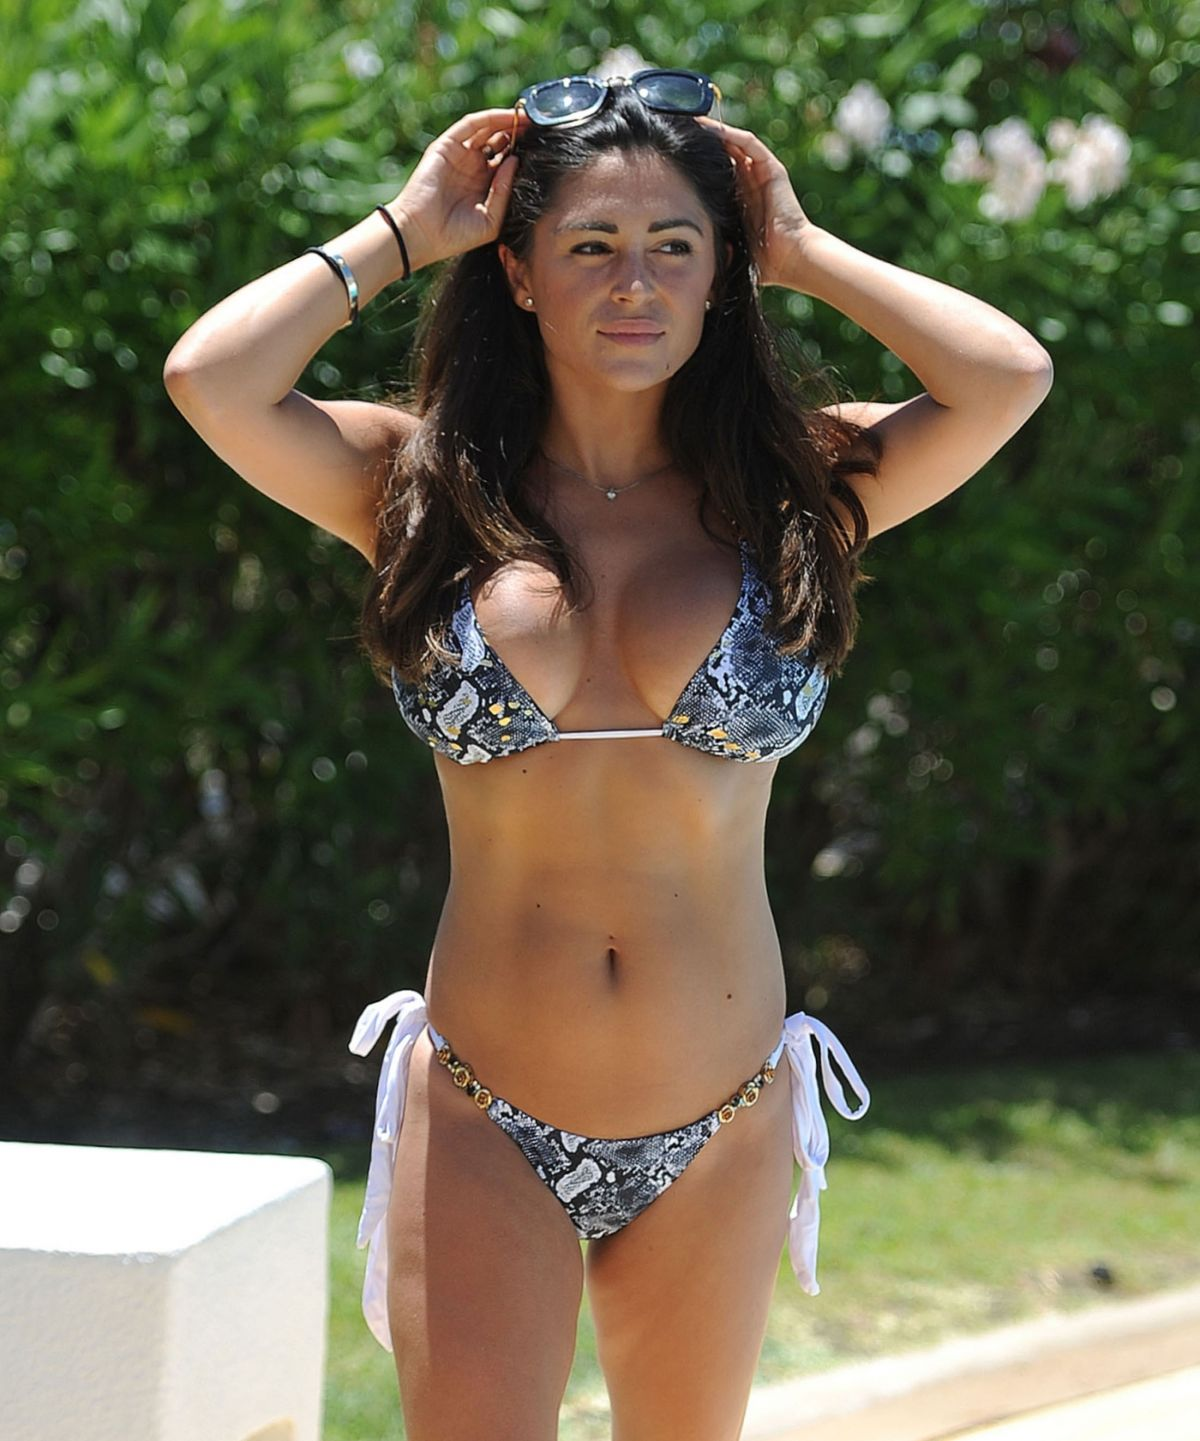 Casey Batchelor in Blue Bikini in Cyprus Pic 4 of 35